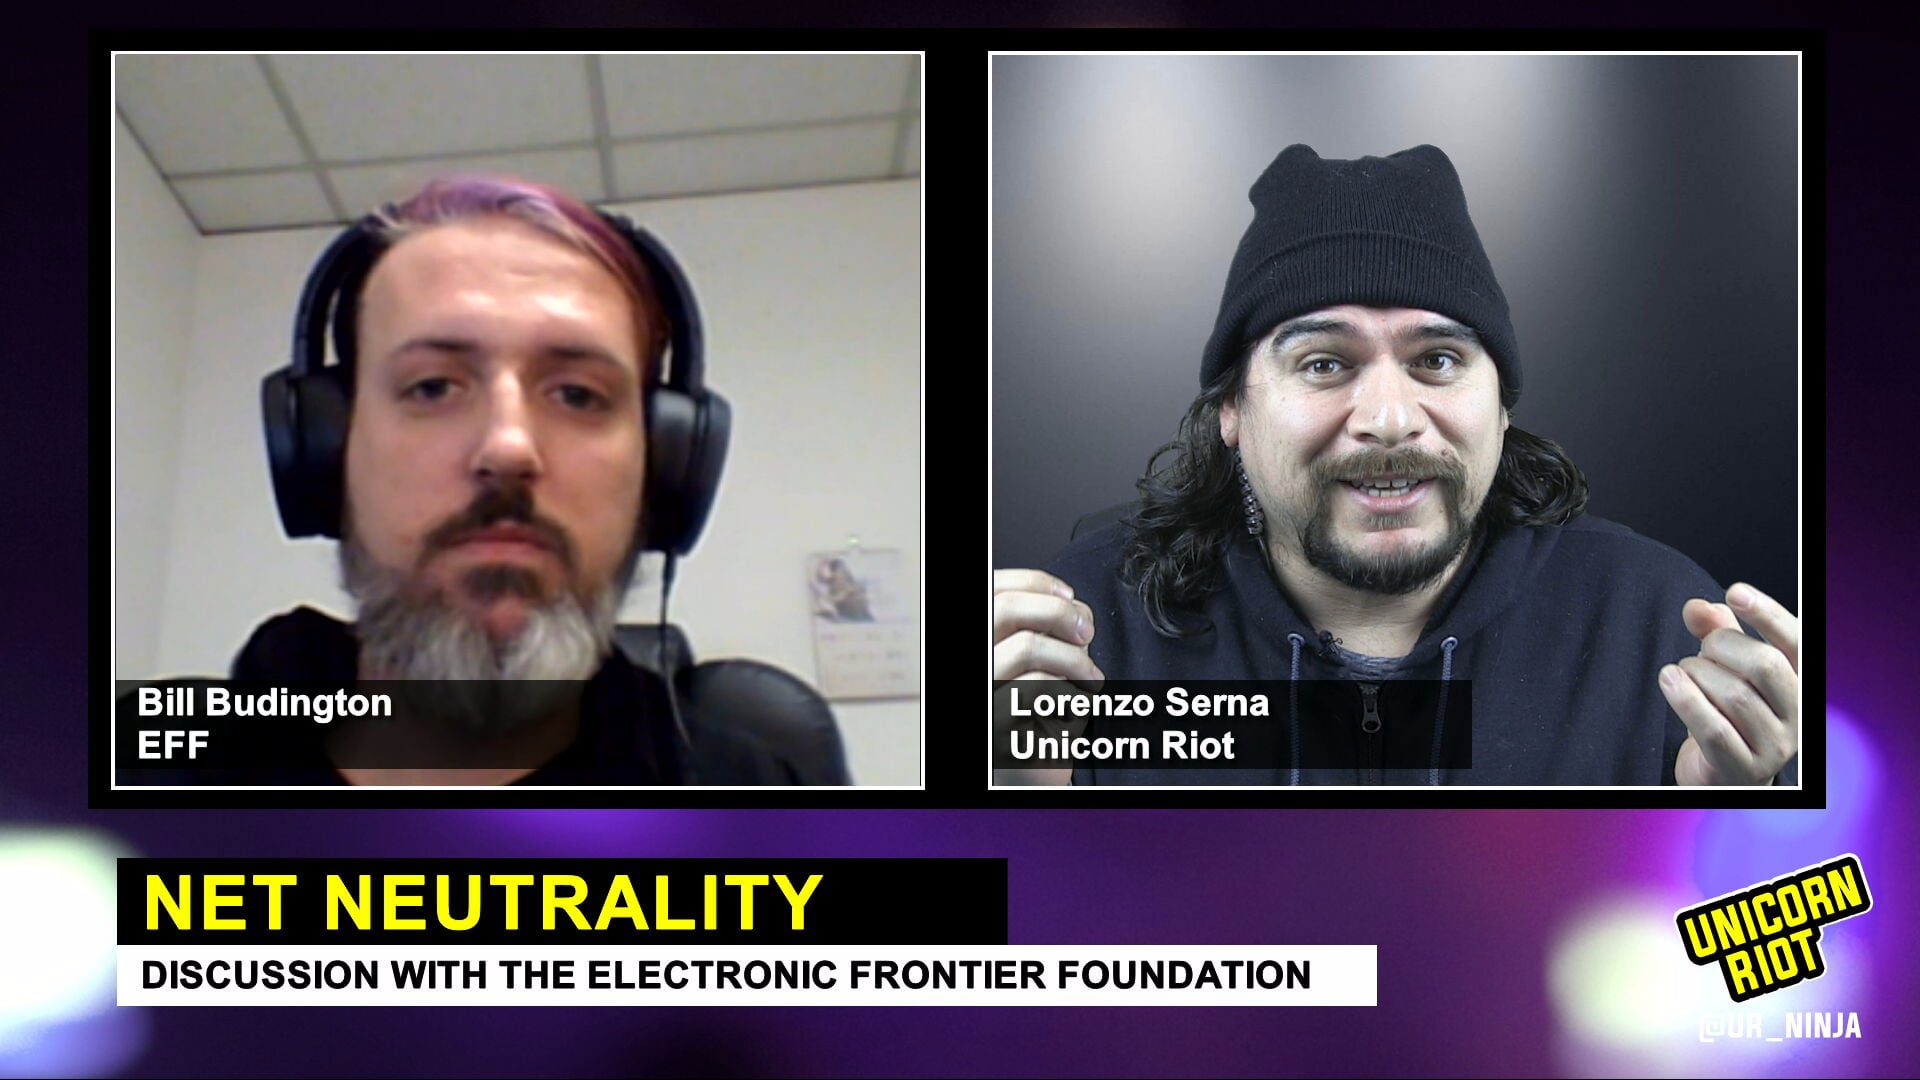 Fcc repeals net neutrality interview w the electronic frontier foundation